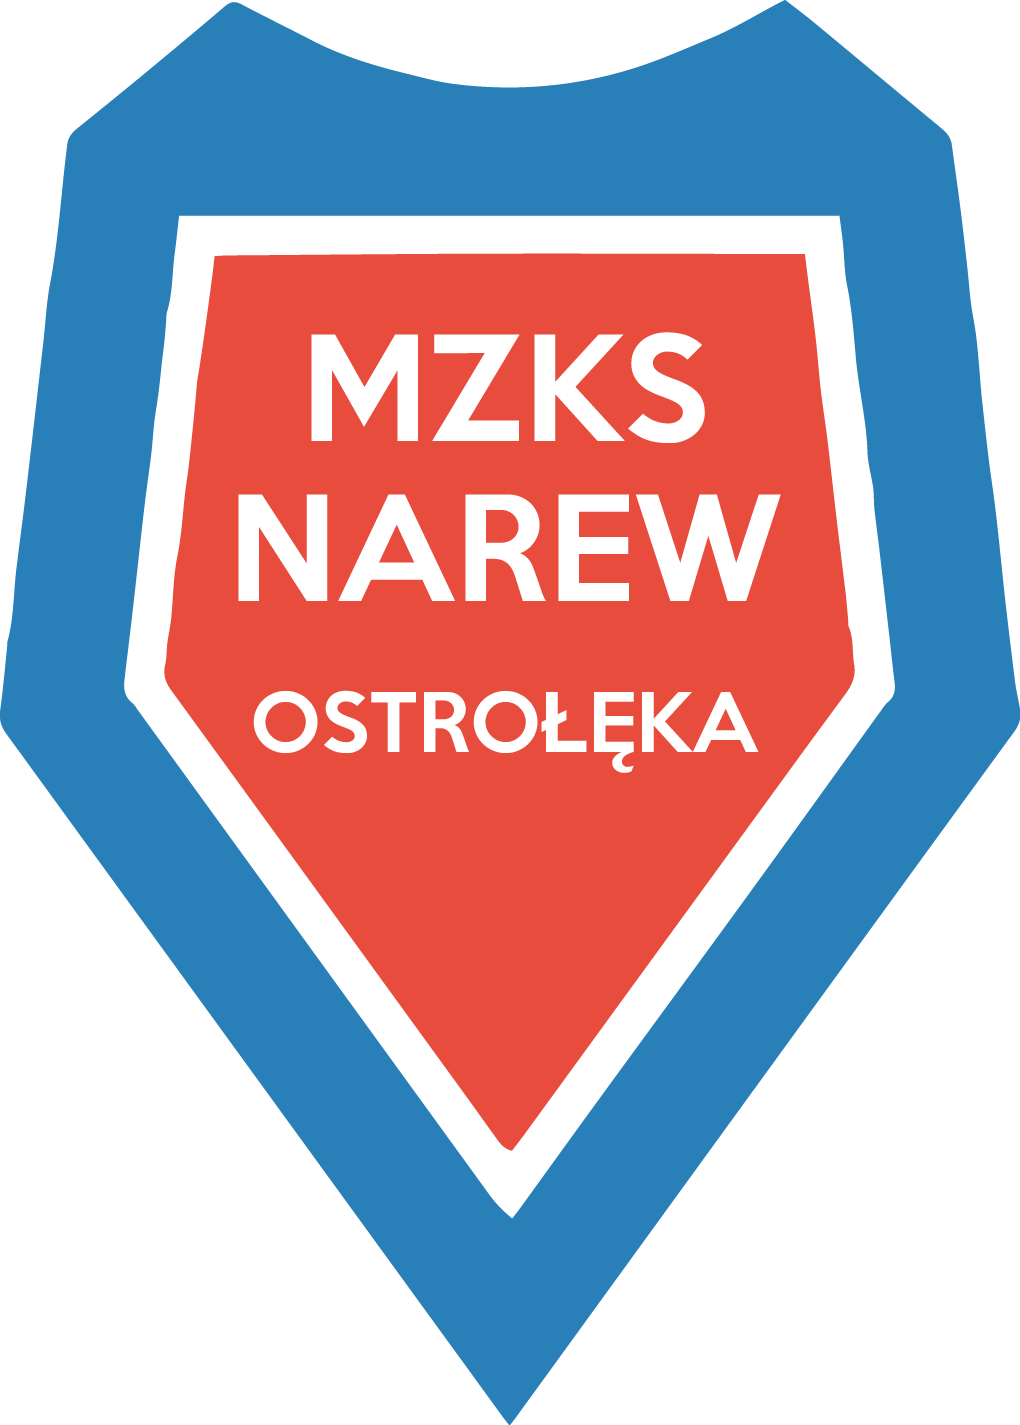 http://www.narew.ostroleka.pl/wp-content/uploads/2016/09/mzks-narew-herb_2.png